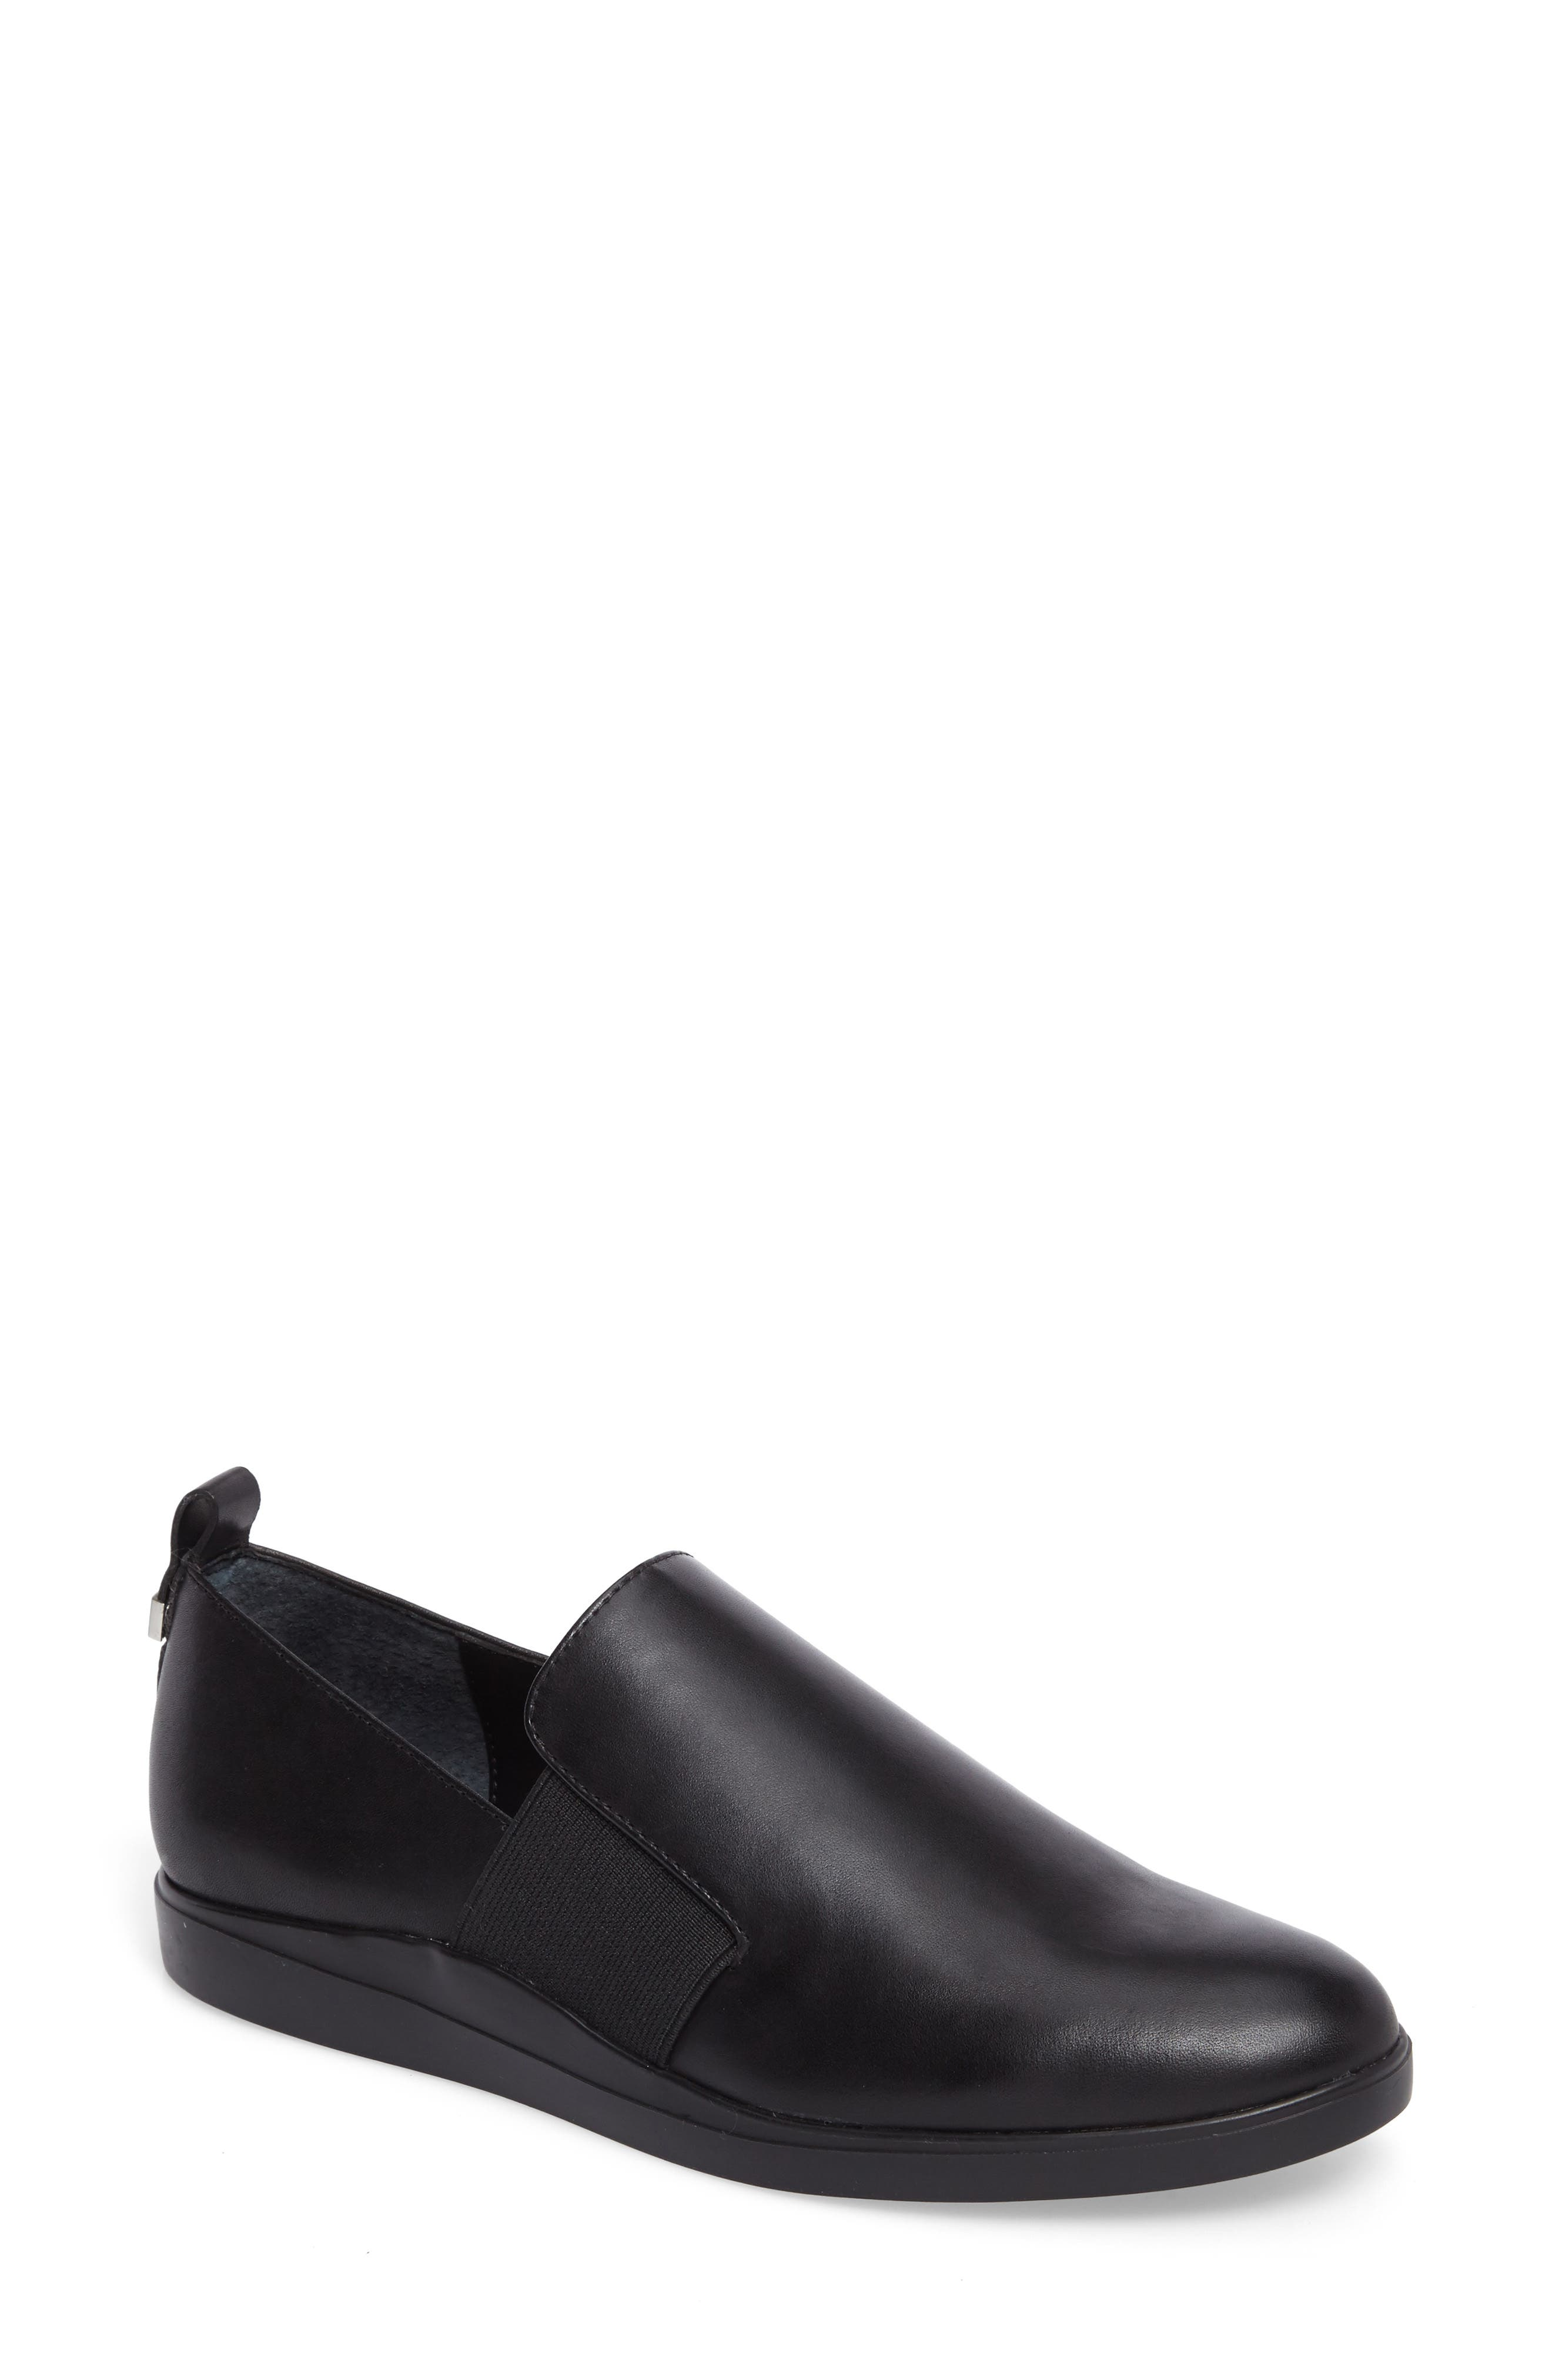 Shannin Loafer,                         Main,                         color, Black Leather